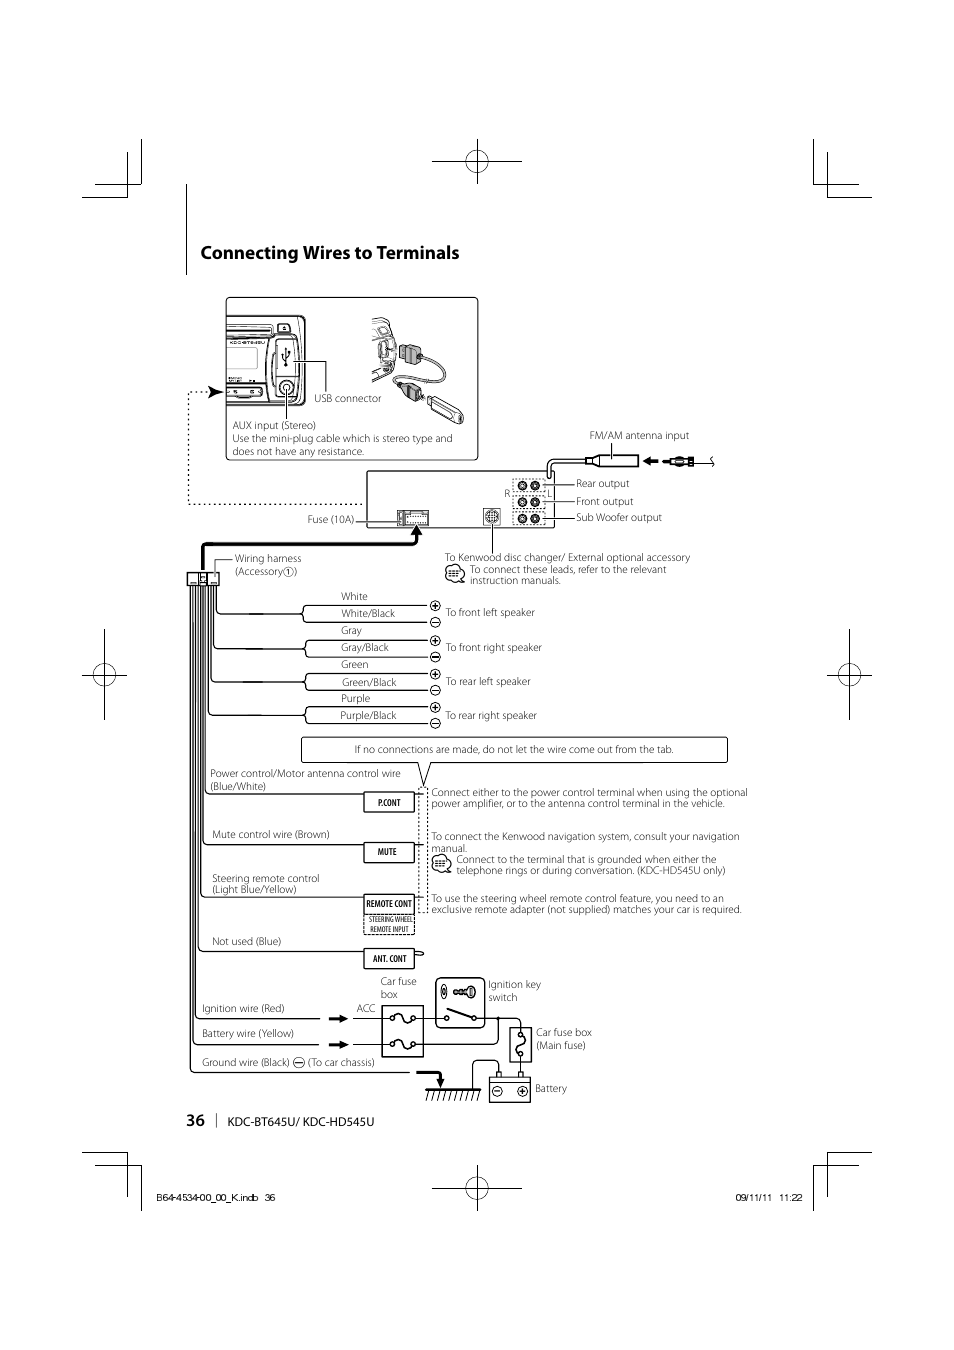 Connecting Wires To Terminals Kenwood Kdc Hd545u User Manual Wiring Harness Colors Don T Match Page 36 128